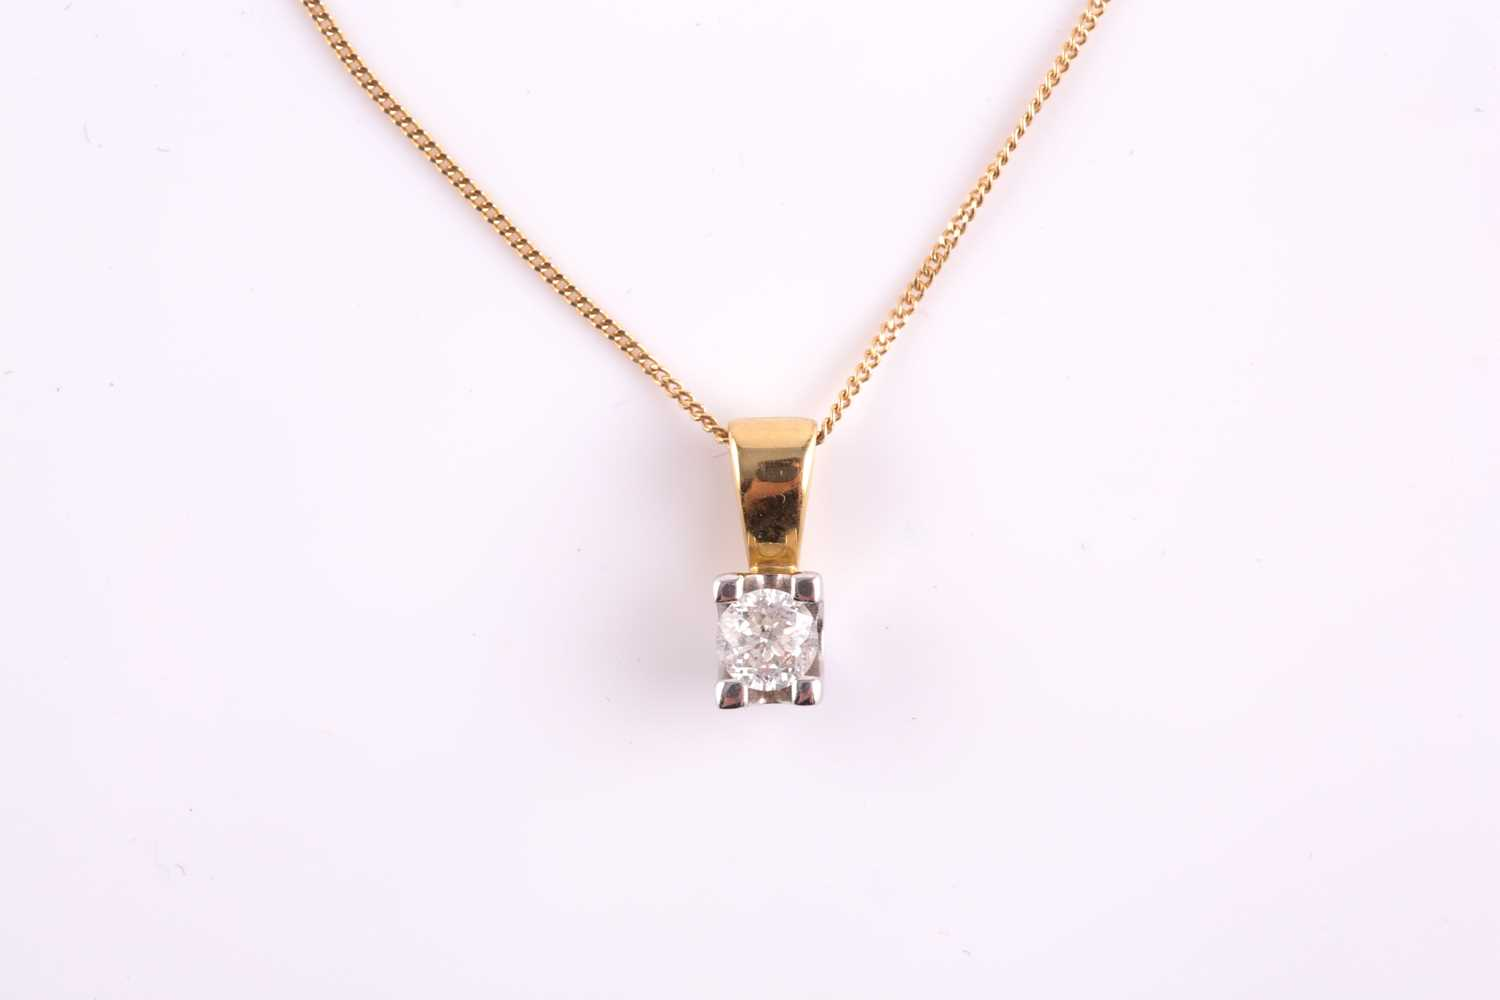 An 18ct yellow gold and solitaire diamond pendant, set with a round brilliant-cut stone of